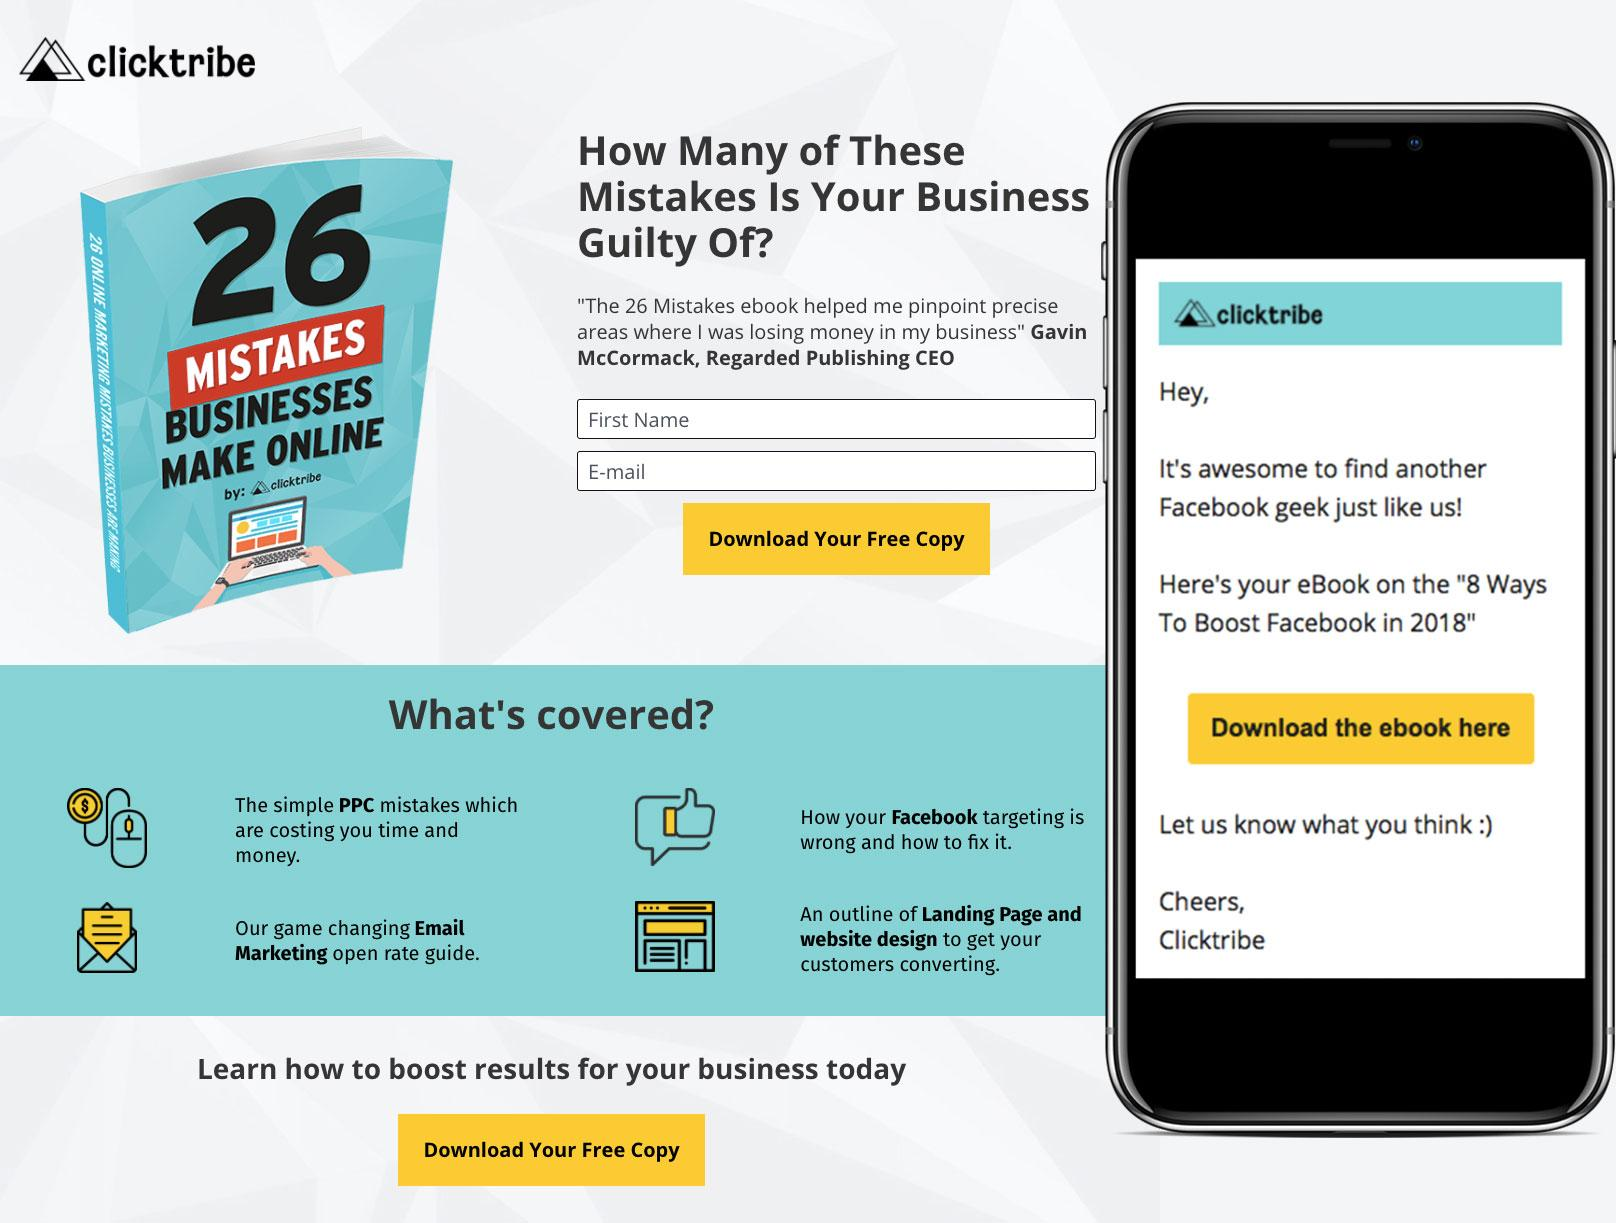 Landing Pages Clicktribe